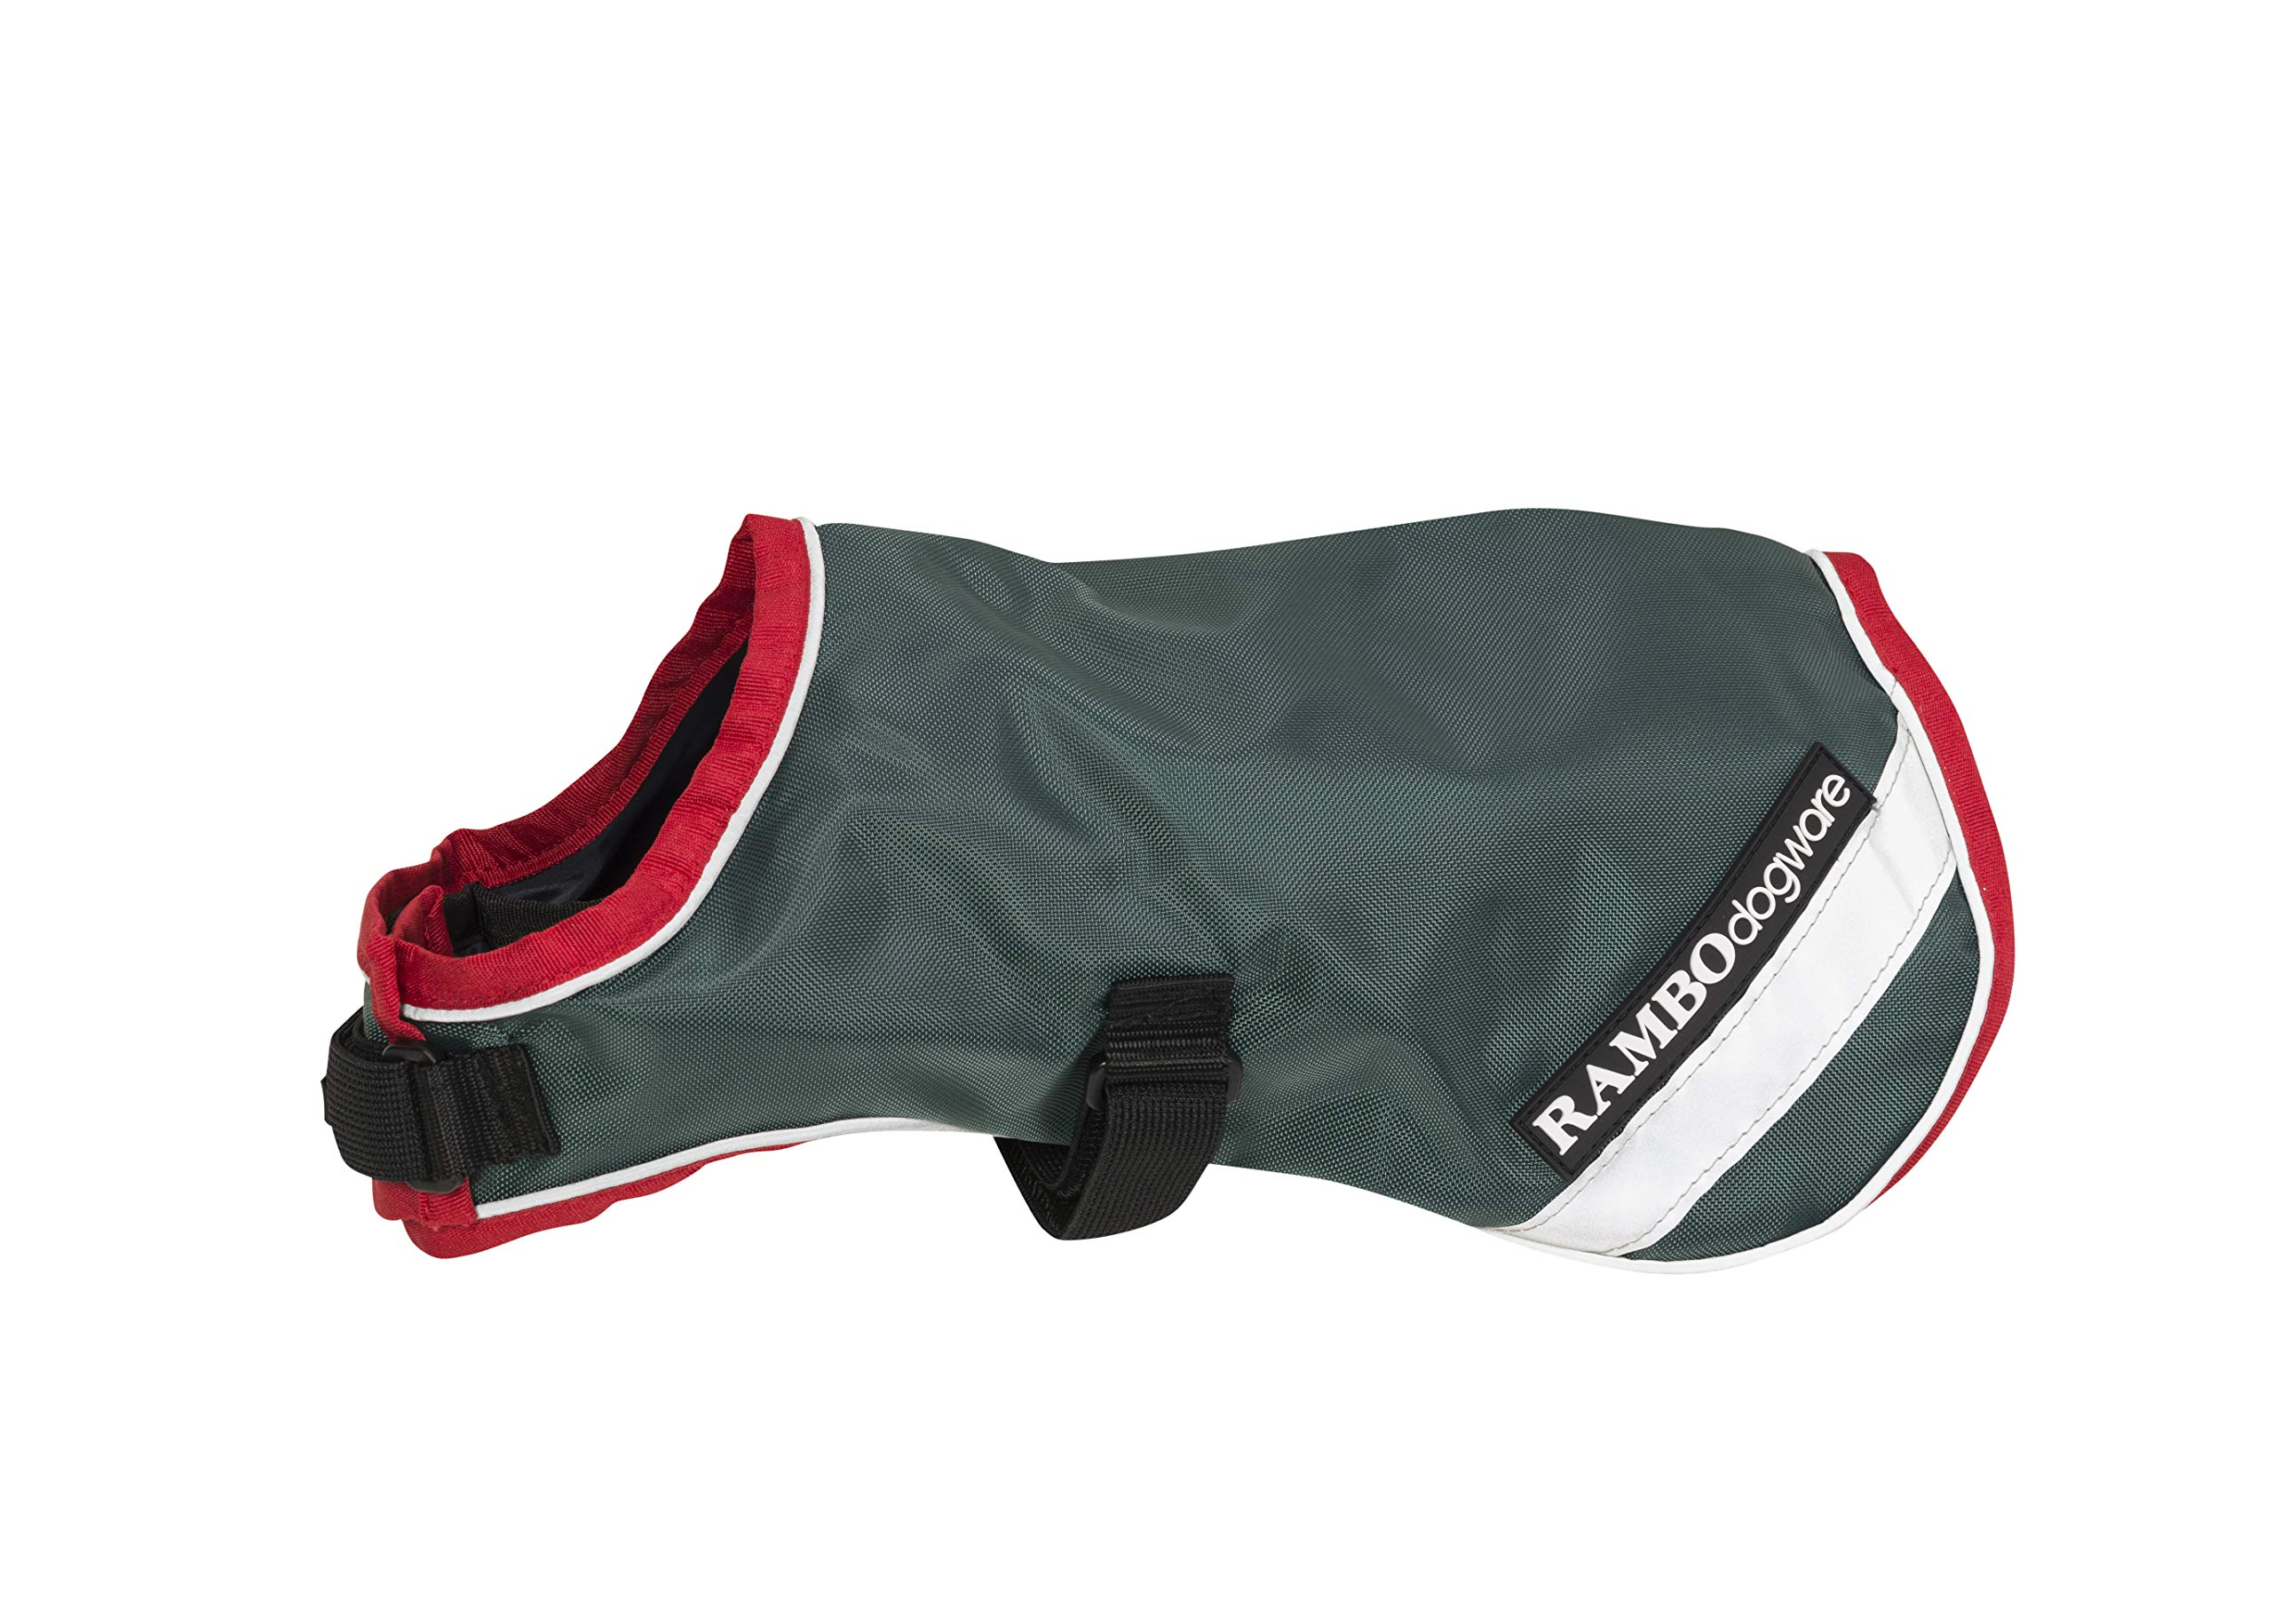 Rambo Waterproof Dog Blanket 100g Large Green/Red